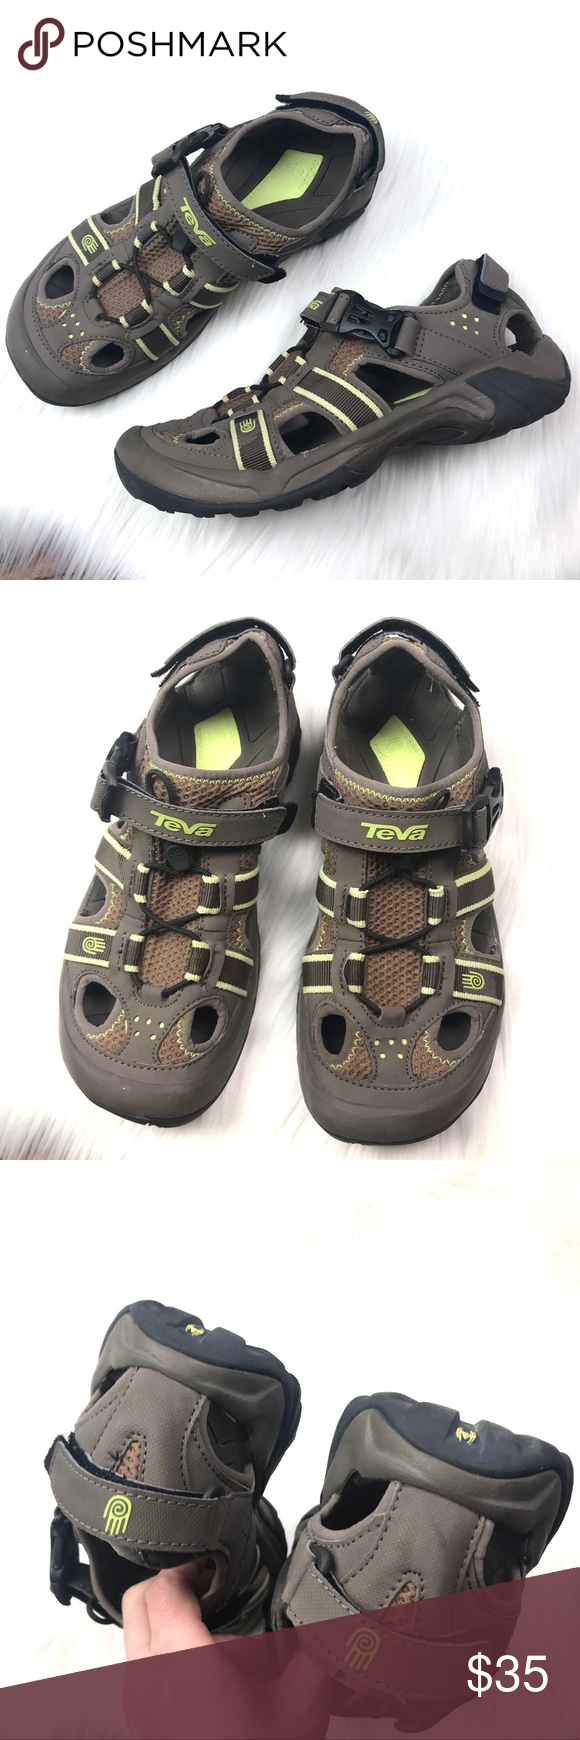 444c2923c06f Teva Women s Omnium Hiking Sandal size 8 Teva Women s Omnium Hiking Sandal  size 8. Brown Gray with lime green yellow accents. Velcro and elastic  stretch ...